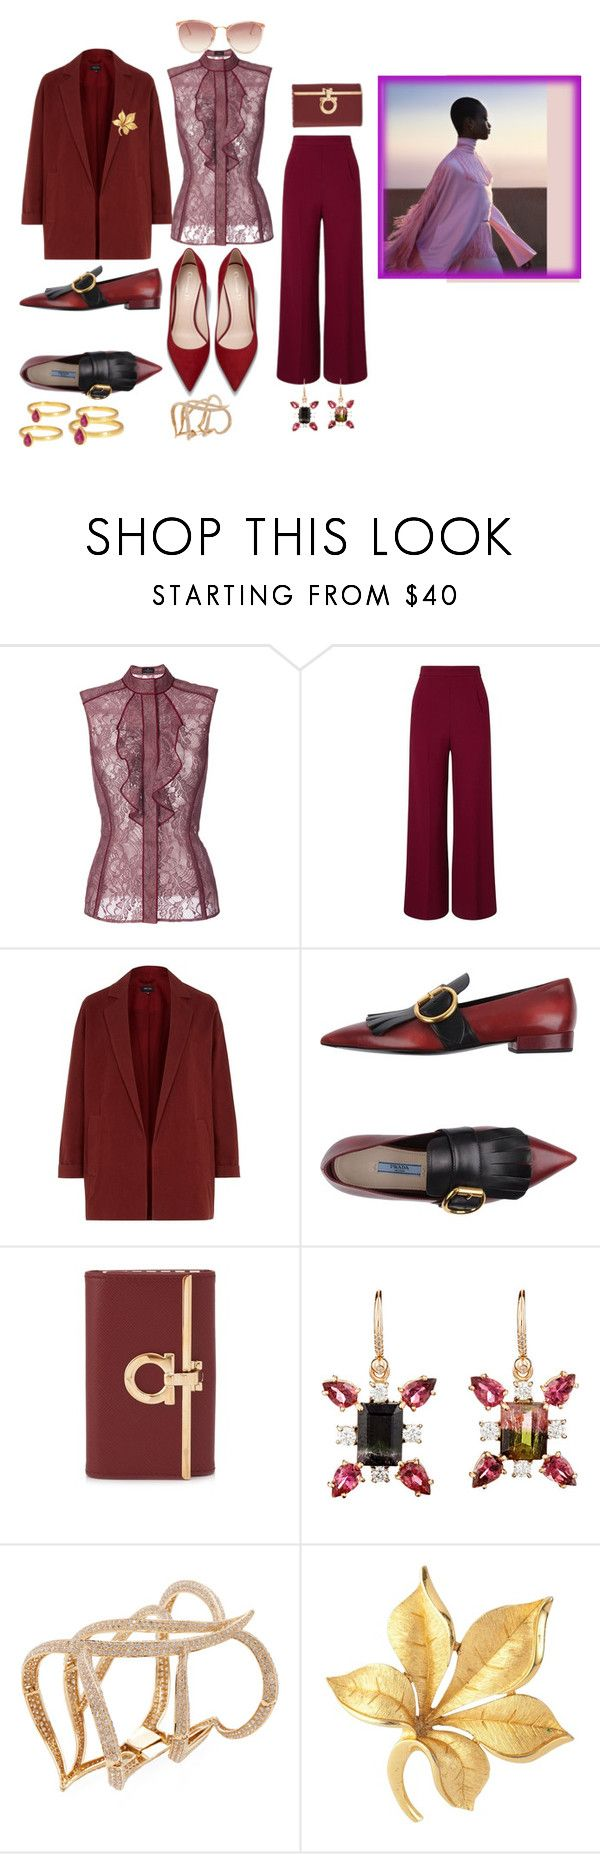 """O'Della's  Choice"" by blujay1126 ❤ liked on Polyvore featuring J. Mendel, Roland Mouret, Prada, Salvatore Ferragamo, Irene Neuwirth, Maiyet, Susan Caplan Vintage and Linda Farrow"